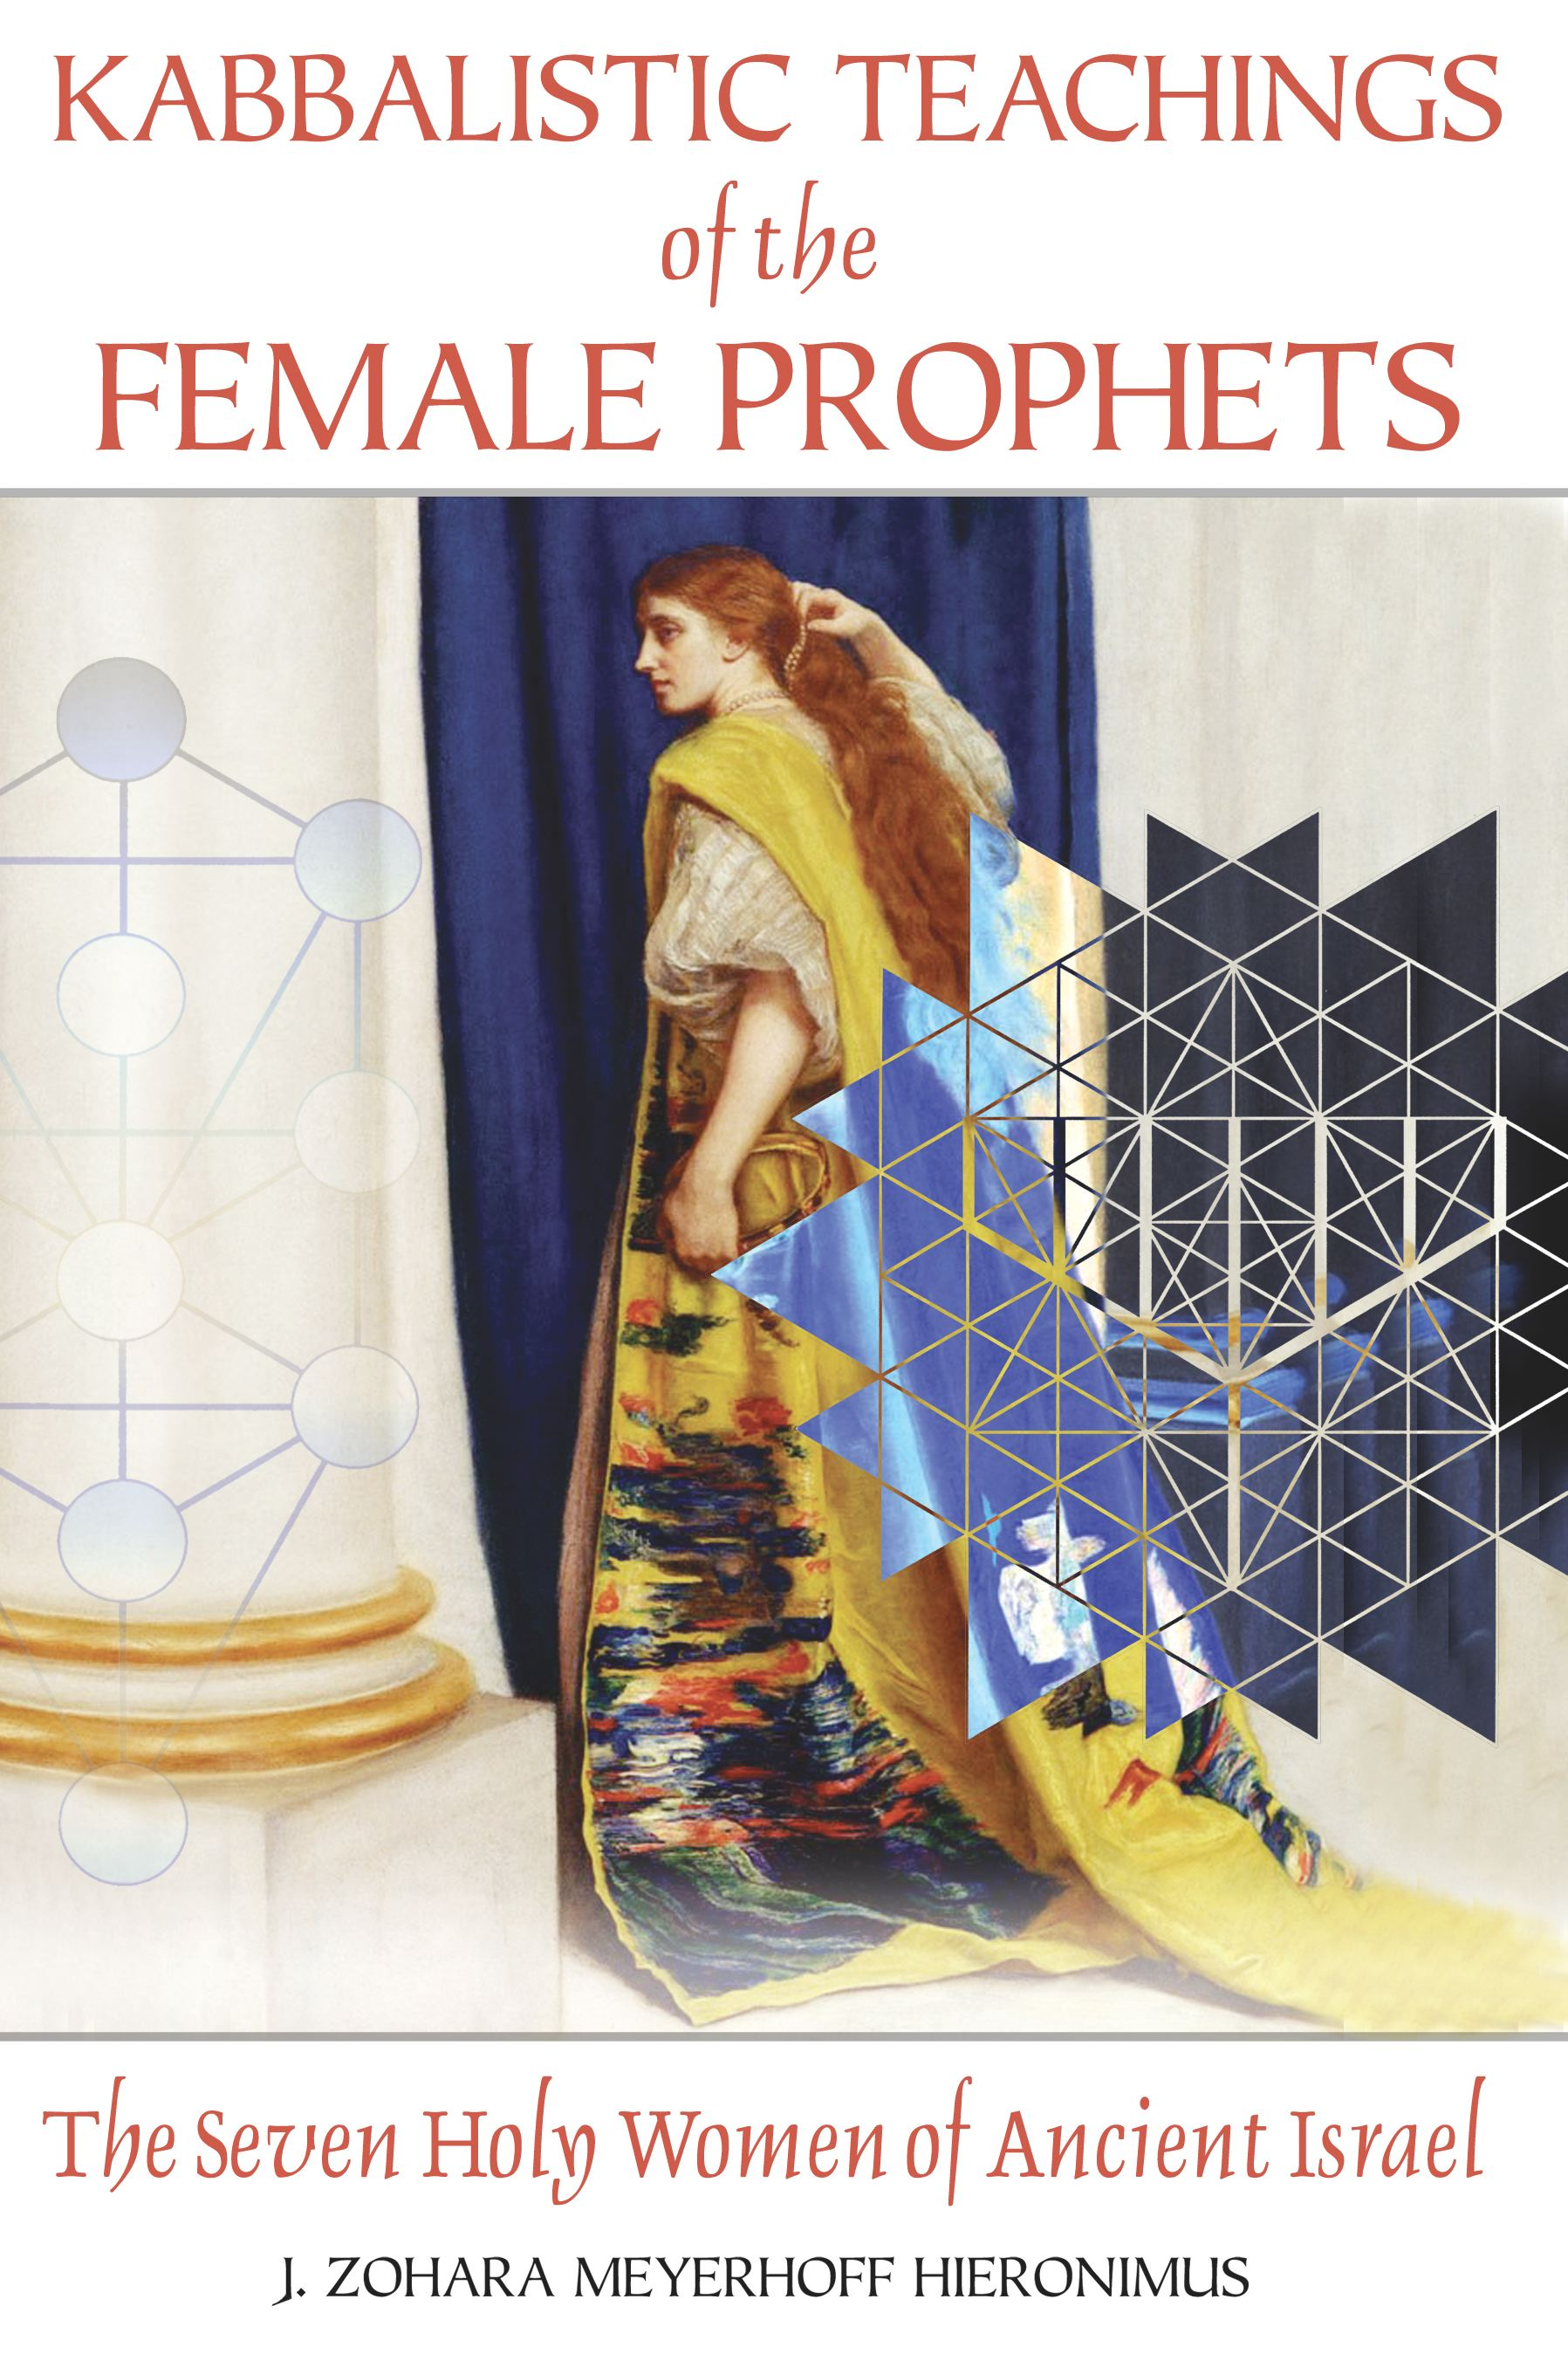 Kabbalistic-teachings-of-the-female-prophets-9781594772276_hr